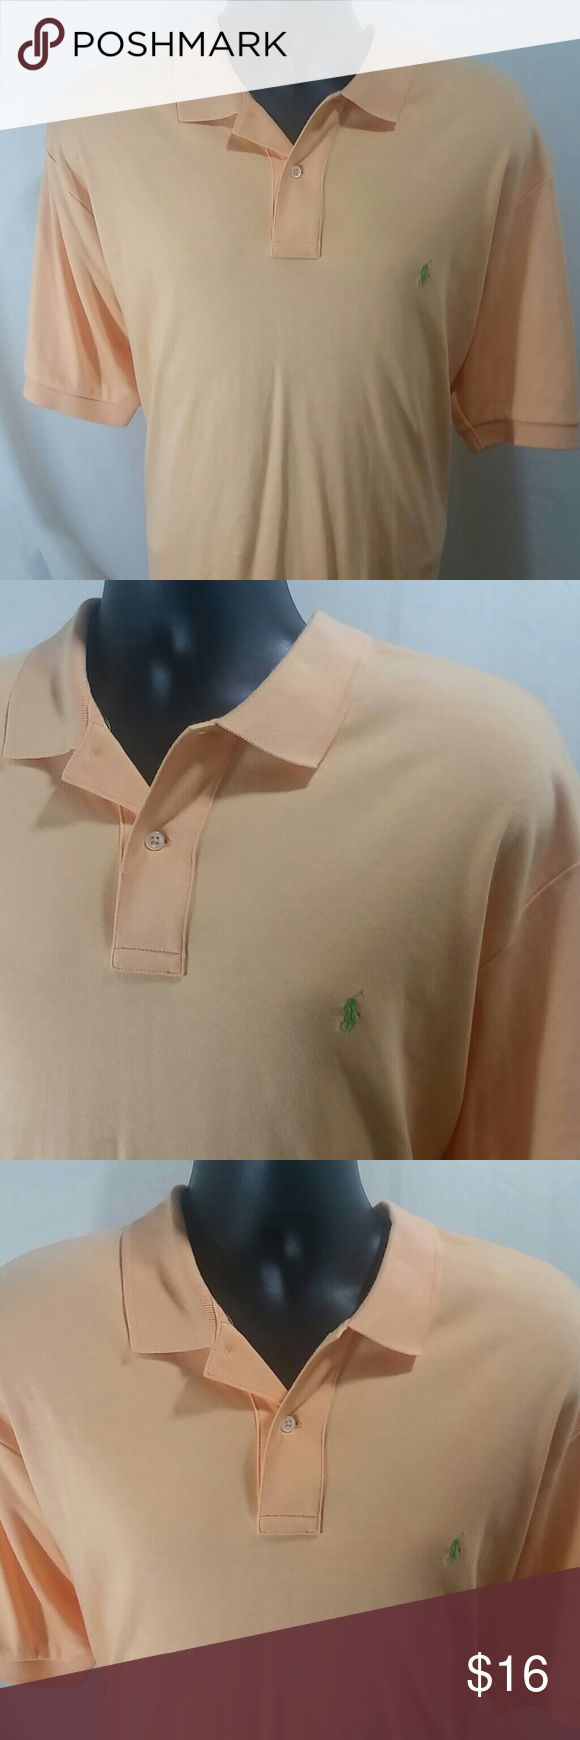 POLO BY RALPH LAUREN  Orange Polo Shirt Size XL Handsome  POLO BY RALPH LAUREN, light orange Polo Shirt.   This Handsome  Shirt is short sleeve,  and is a size XL.   This POLO BY RALPH LAUREN POLO Shirt  is in excellent like new condition. Polo by Ralph Lauren Shirts Polos